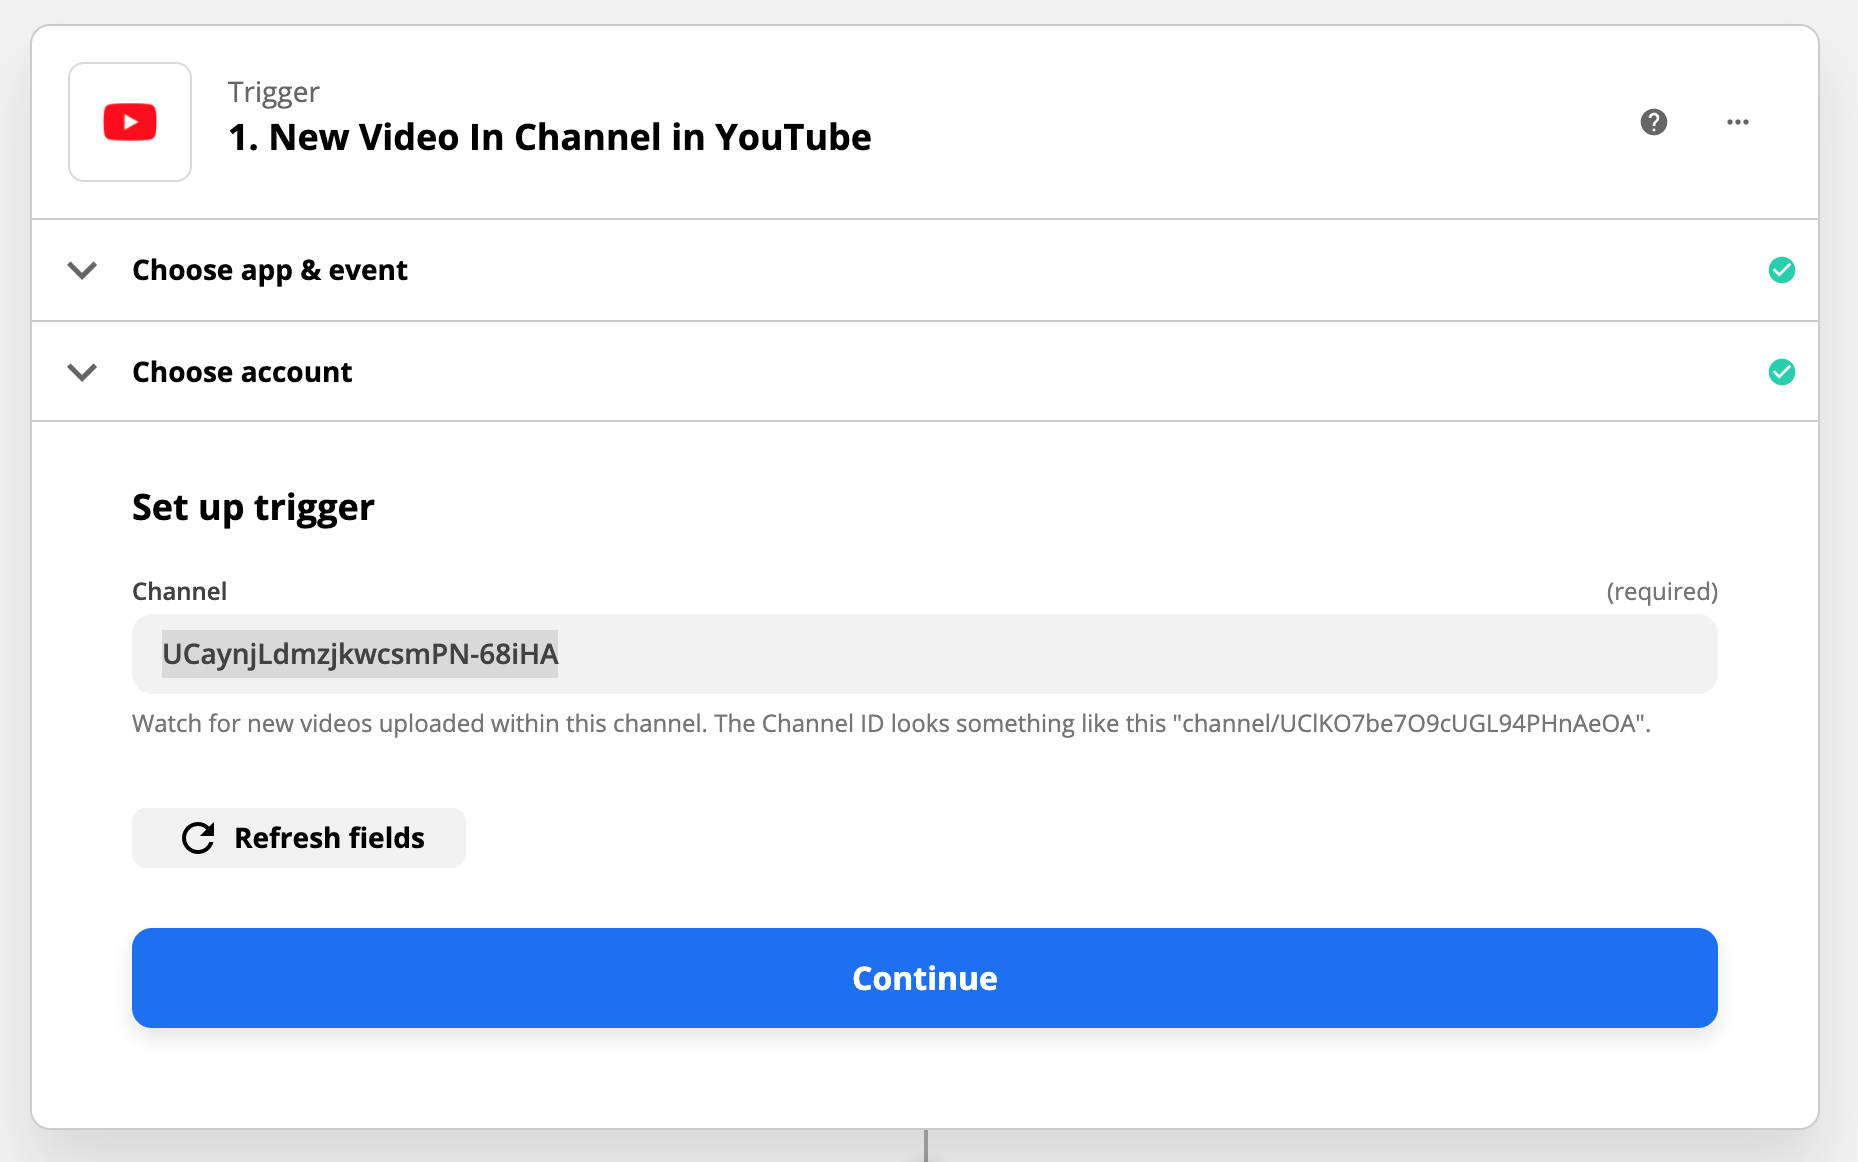 Connect Youtube Account ID that I want to watch using Zapier